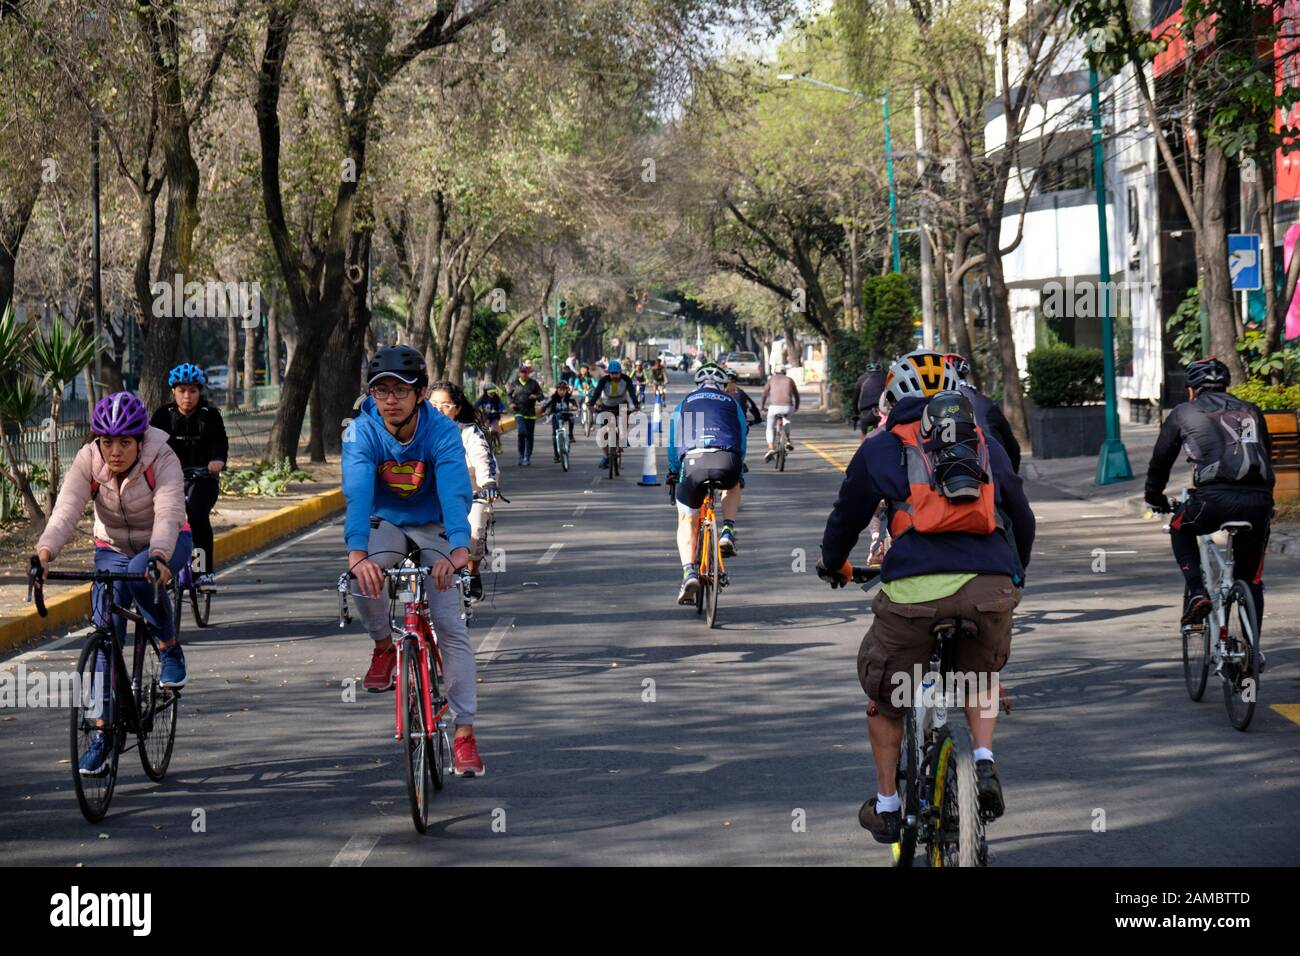 mexico-city-mexico-january-12th-2020-cyclists-on-the-tree-lined-traffic-free-streets-of-la-condesa-neighbourhood-muevete-en-bici-is-a-government-backed-initiative-that-aims-to-promote-a-healthy-and-active-lifestyle-for-residents-of-mexico-city-cyclists-joggers-families-and-even-their-dogs-take-over-the-otherwise-congested-streets-of-the-city-every-sunday-morning-credit-meanderingemu-alamy-live-news-2AMBTTD.jpg